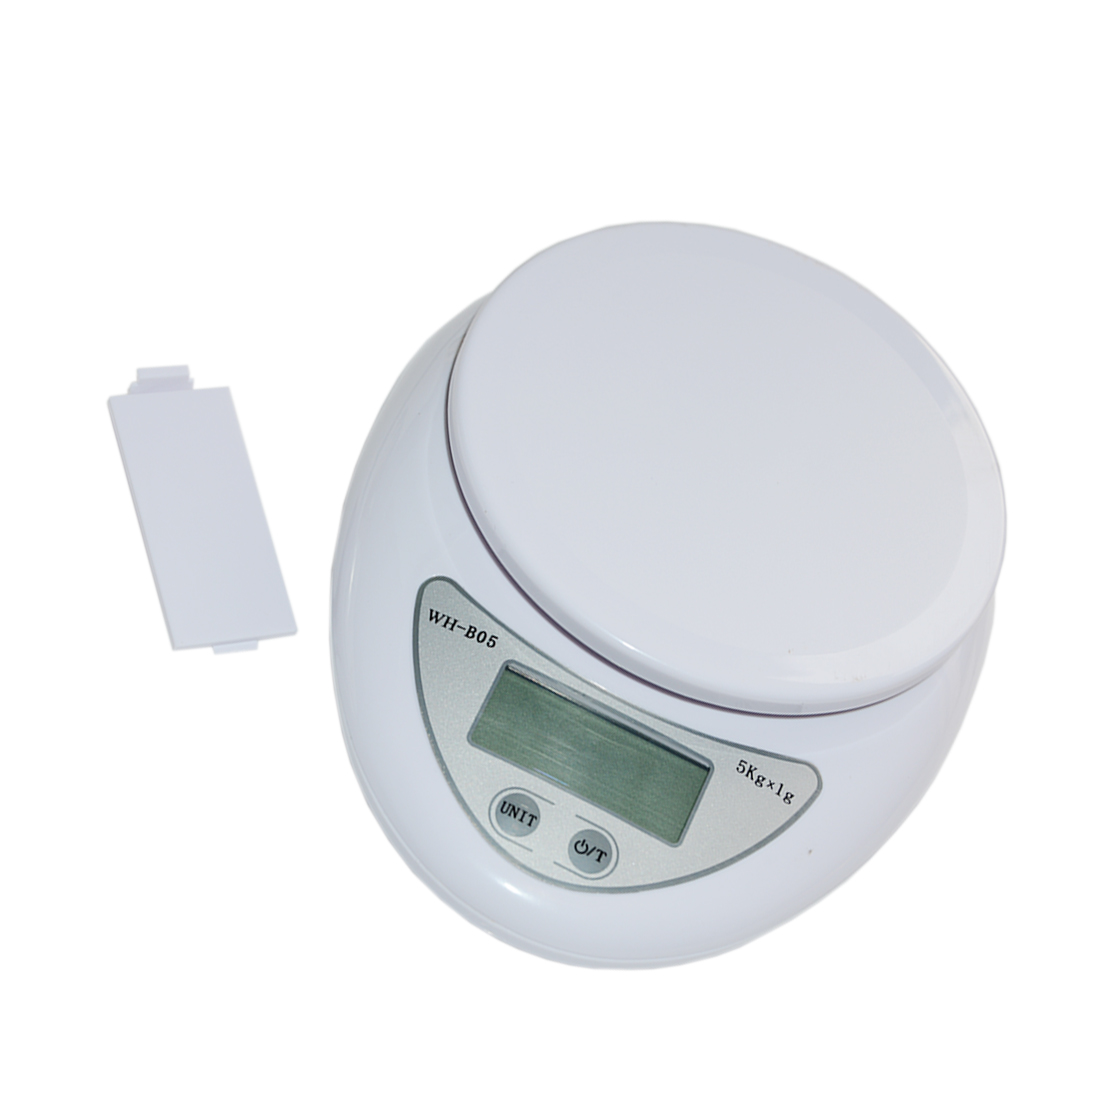 Digital Scale Kitchen 5kg 5000g/1g Food Diet Postal Scale Electronic Weight Scales Balance Weighting Tool LED ElectronicDigital Scale Kitchen 5kg 5000g/1g Food Diet Postal Scale Electronic Weight Scales Balance Weighting Tool LED Electronic